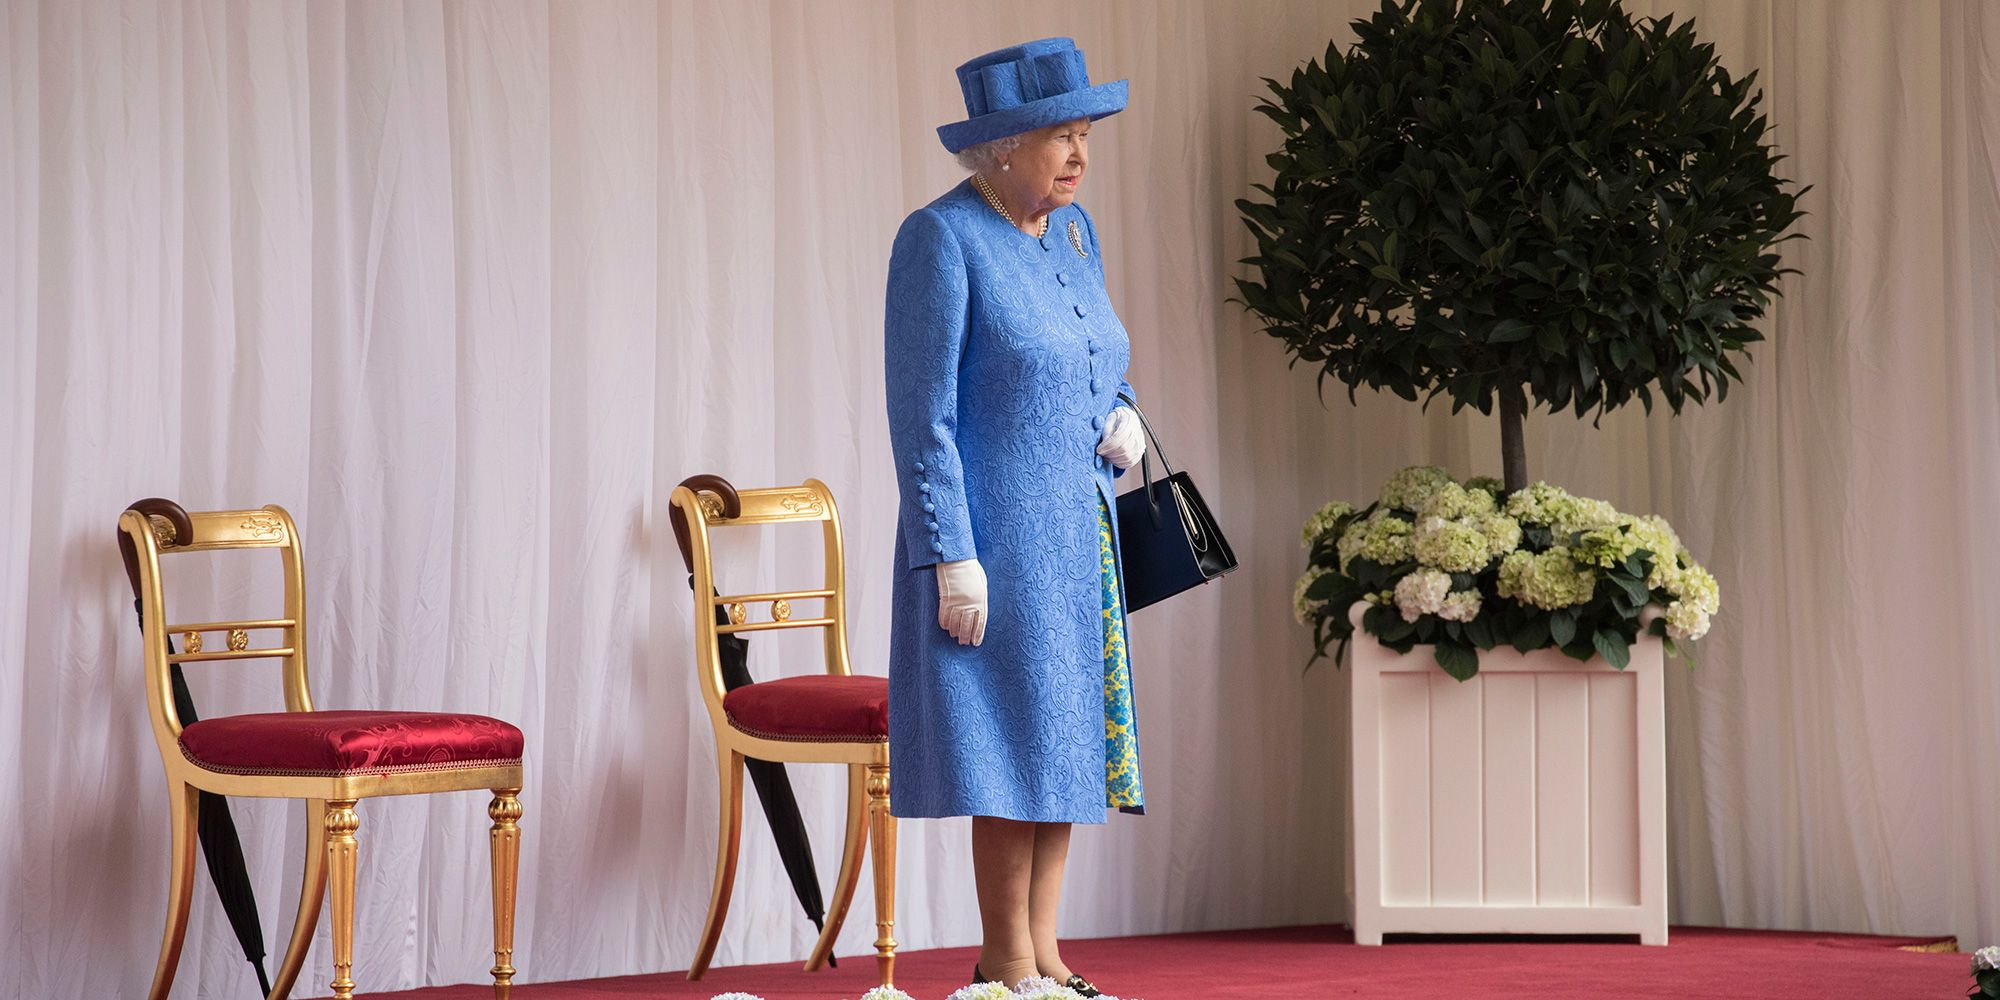 Donald Trump denies making the Queen wait 15 minutes for him to arrive